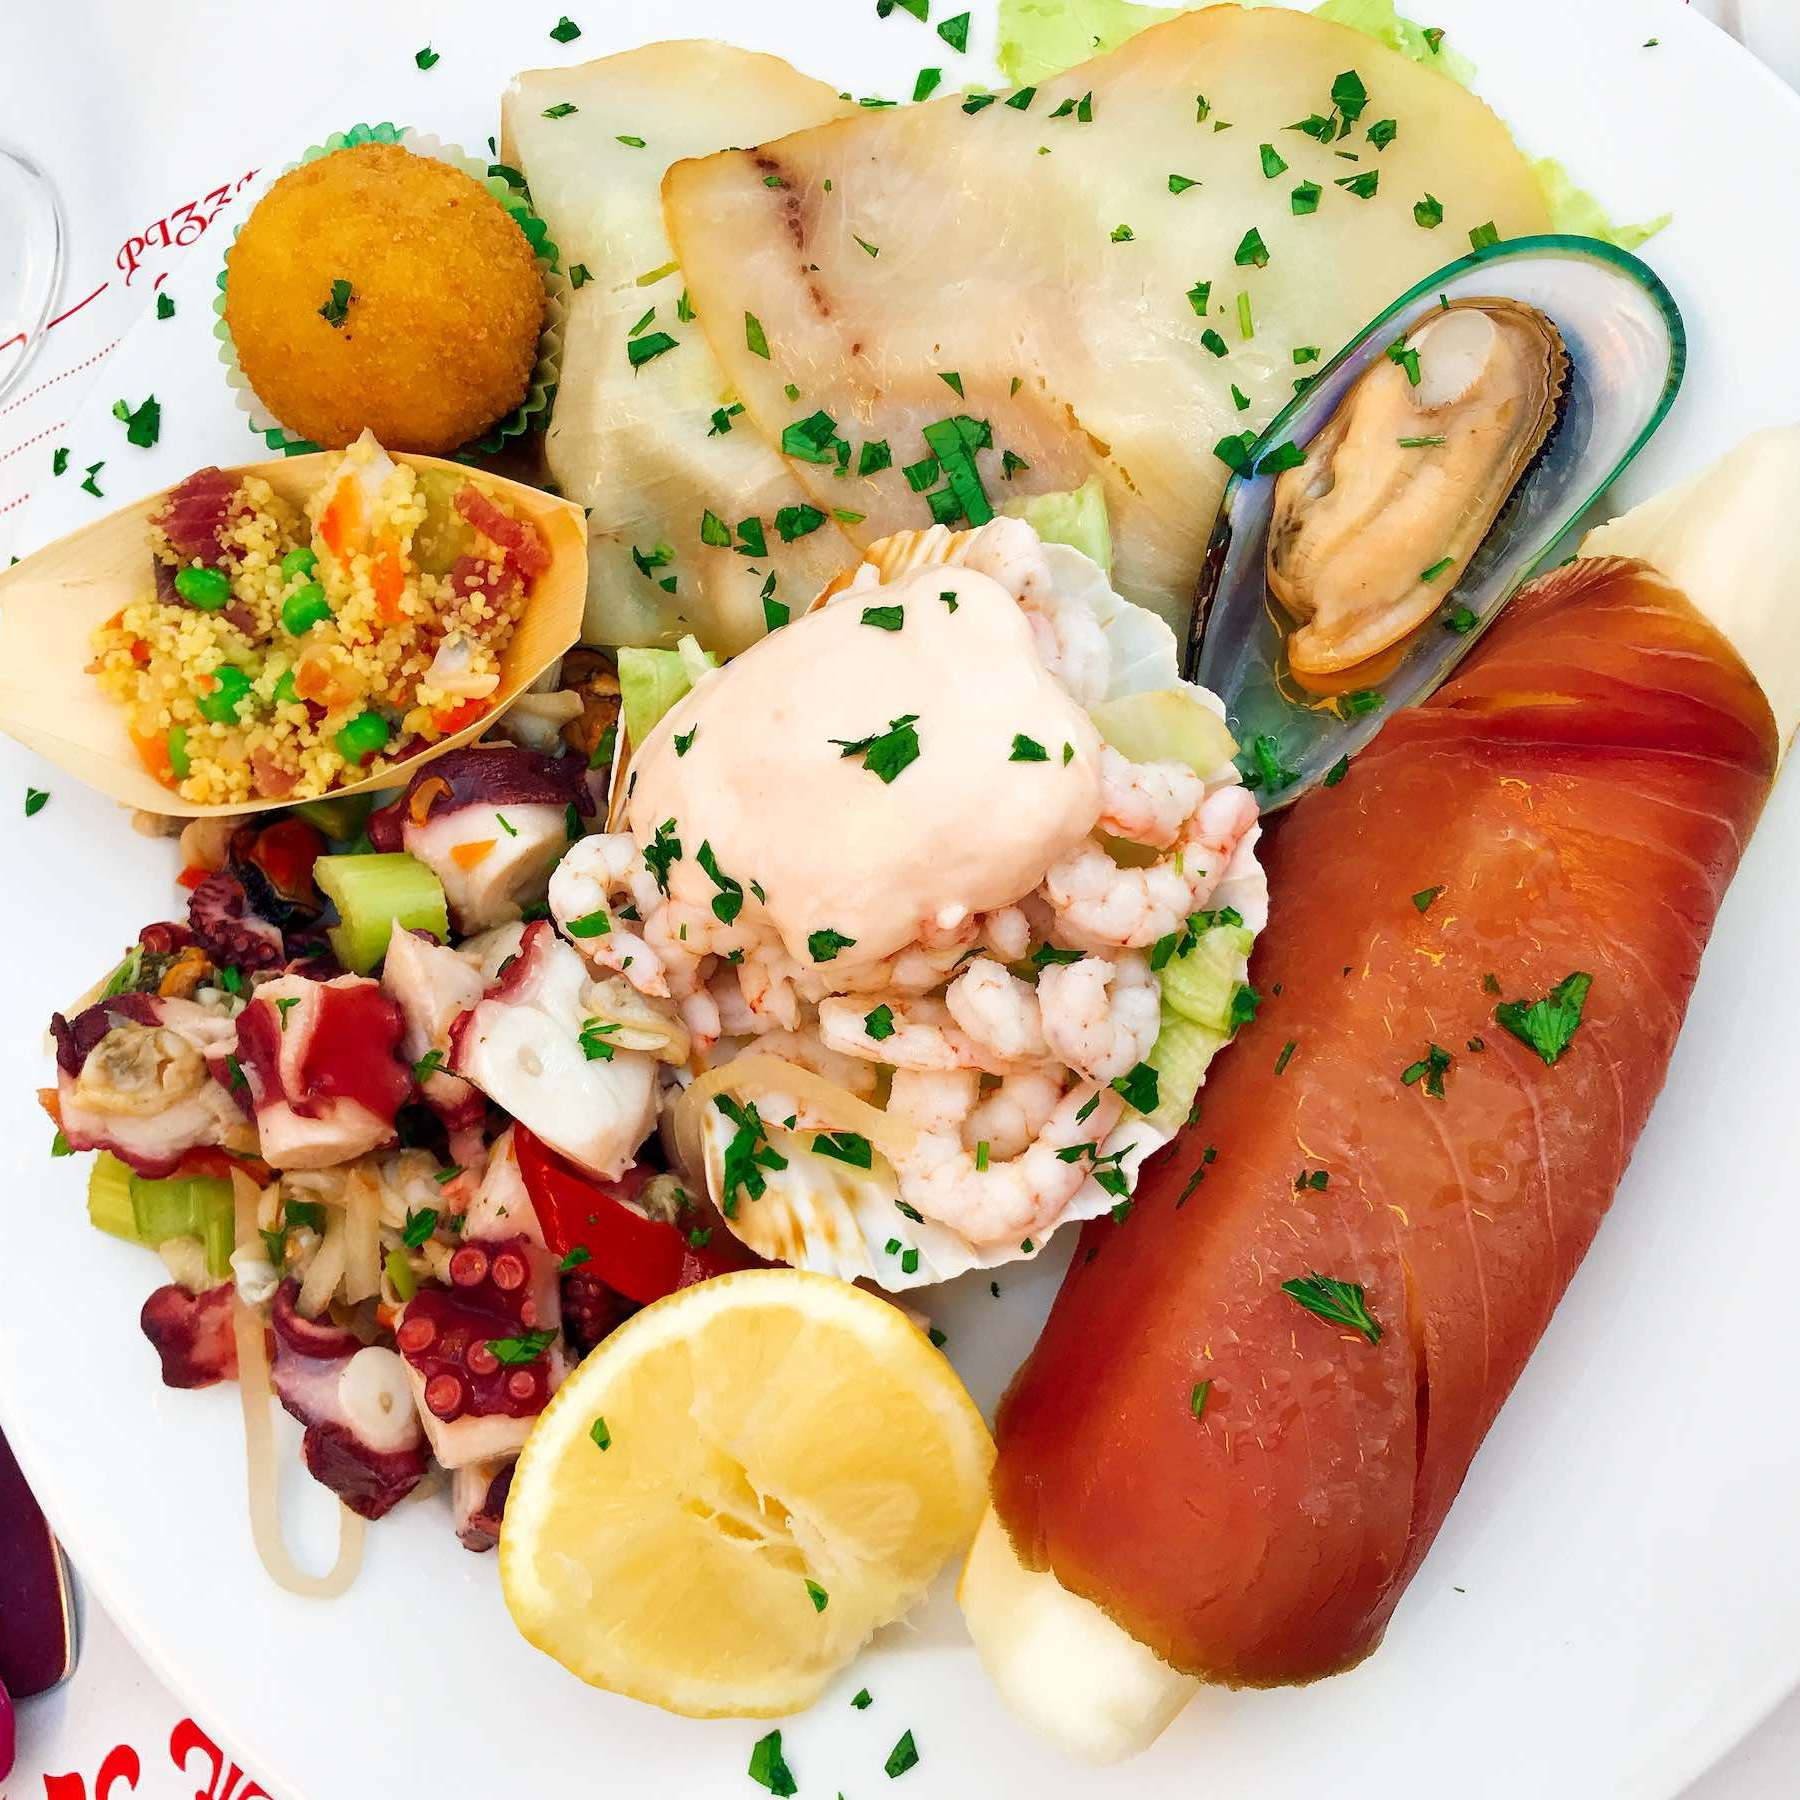 A selection of seafood